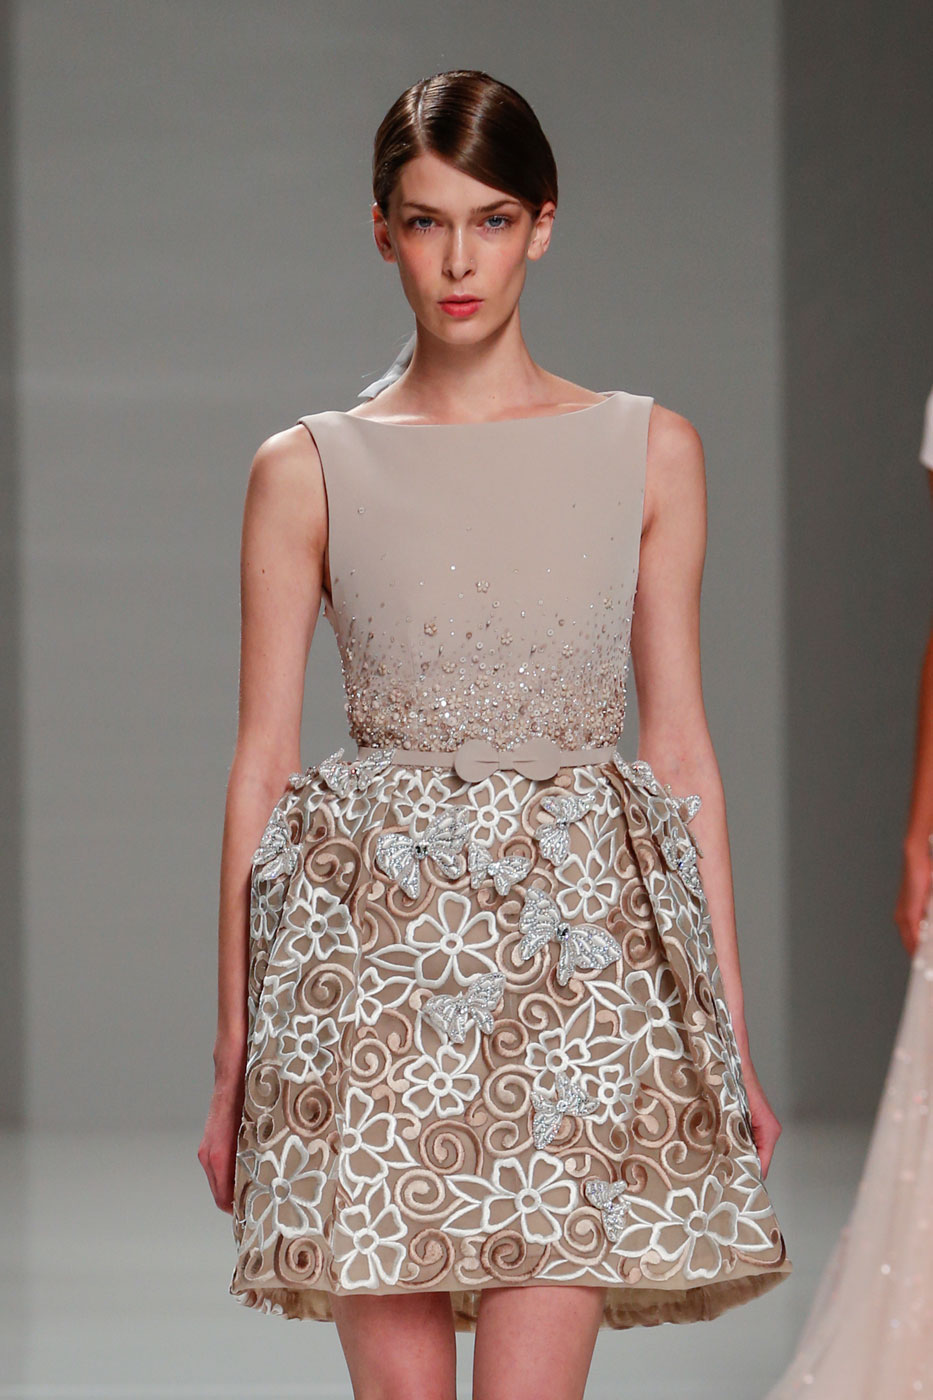 Georges-Hobeika-fashion-runway-show-haute-couture-paris-spring-2015-the-impression-54